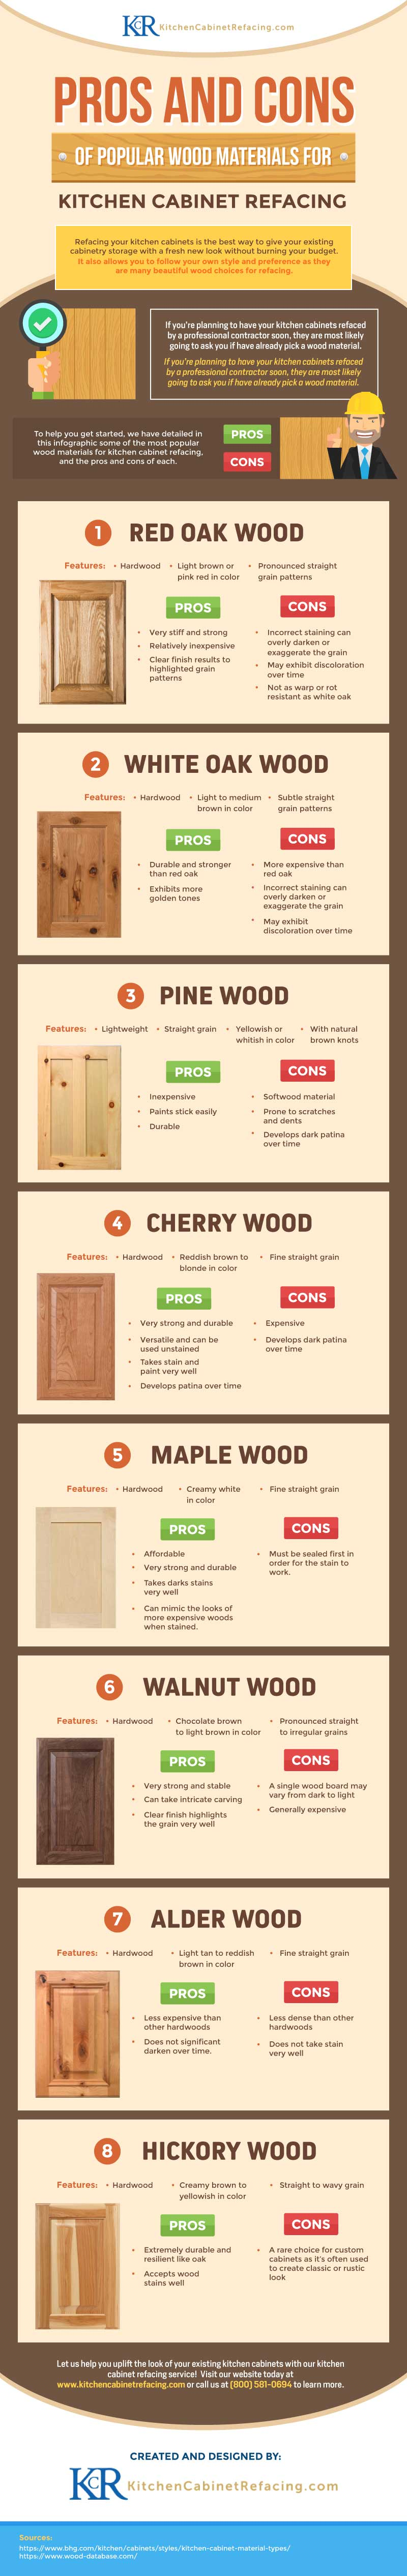 Pros and Cons of Popular Wood Materials For Kitchen Cabinet Refacing Infographic